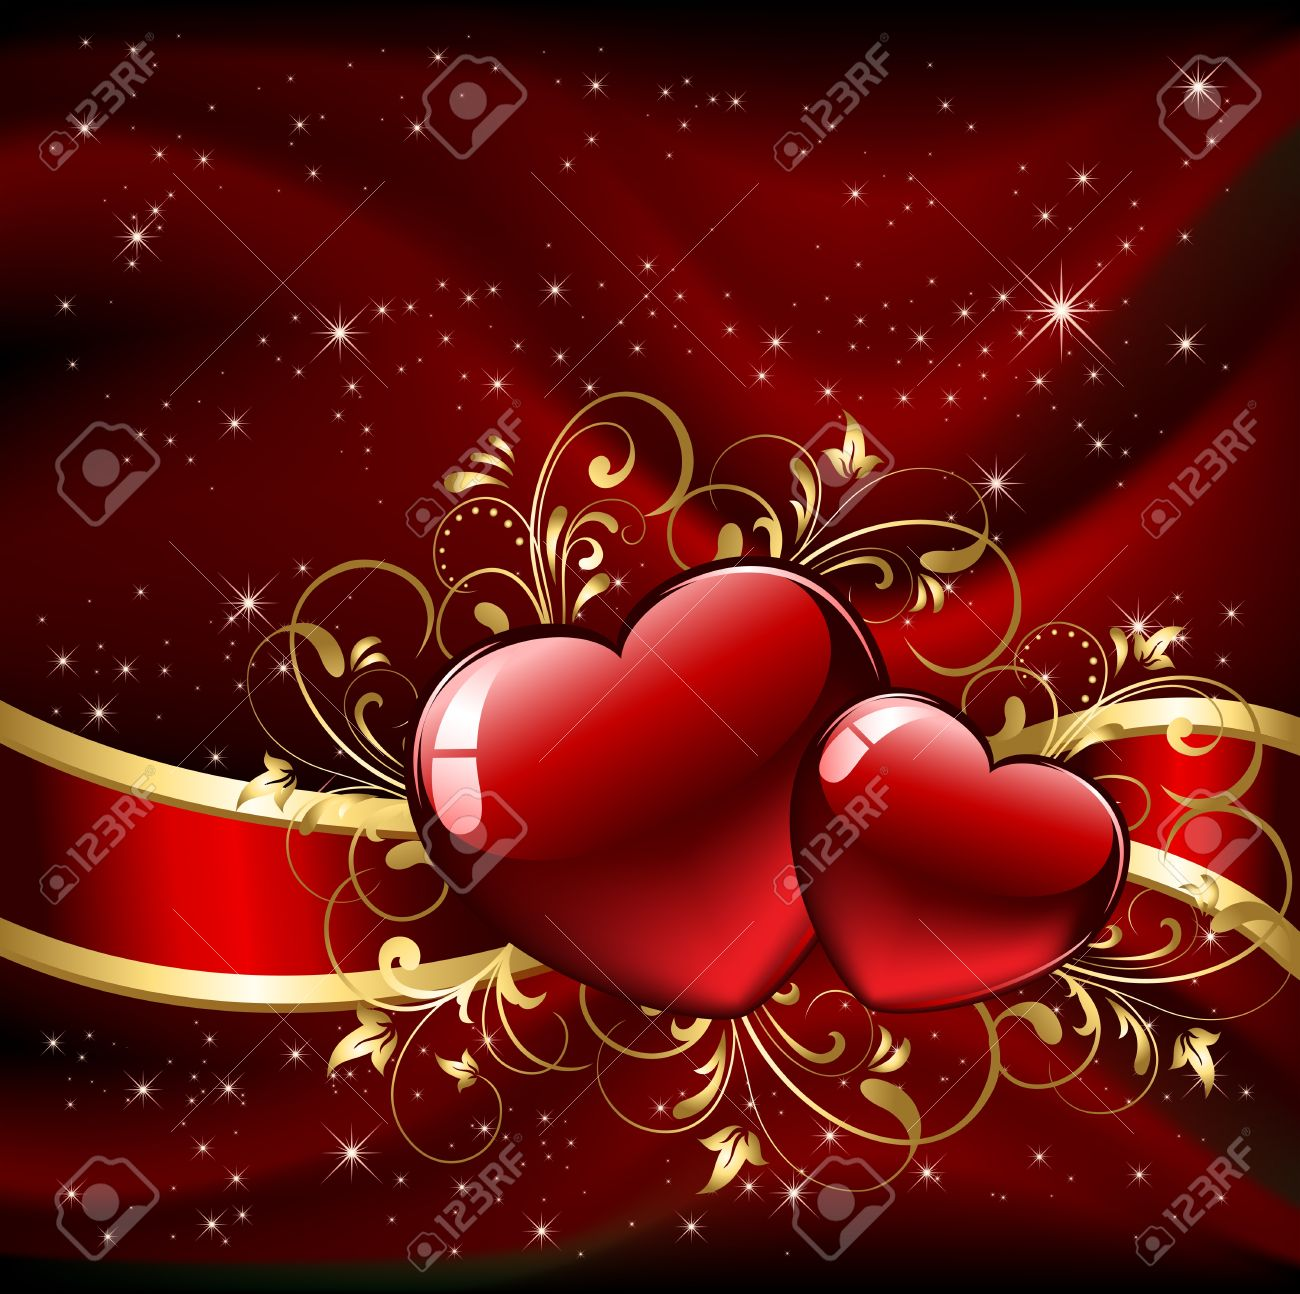 Background with red Hearts, illustration Stock Vector - 11640083